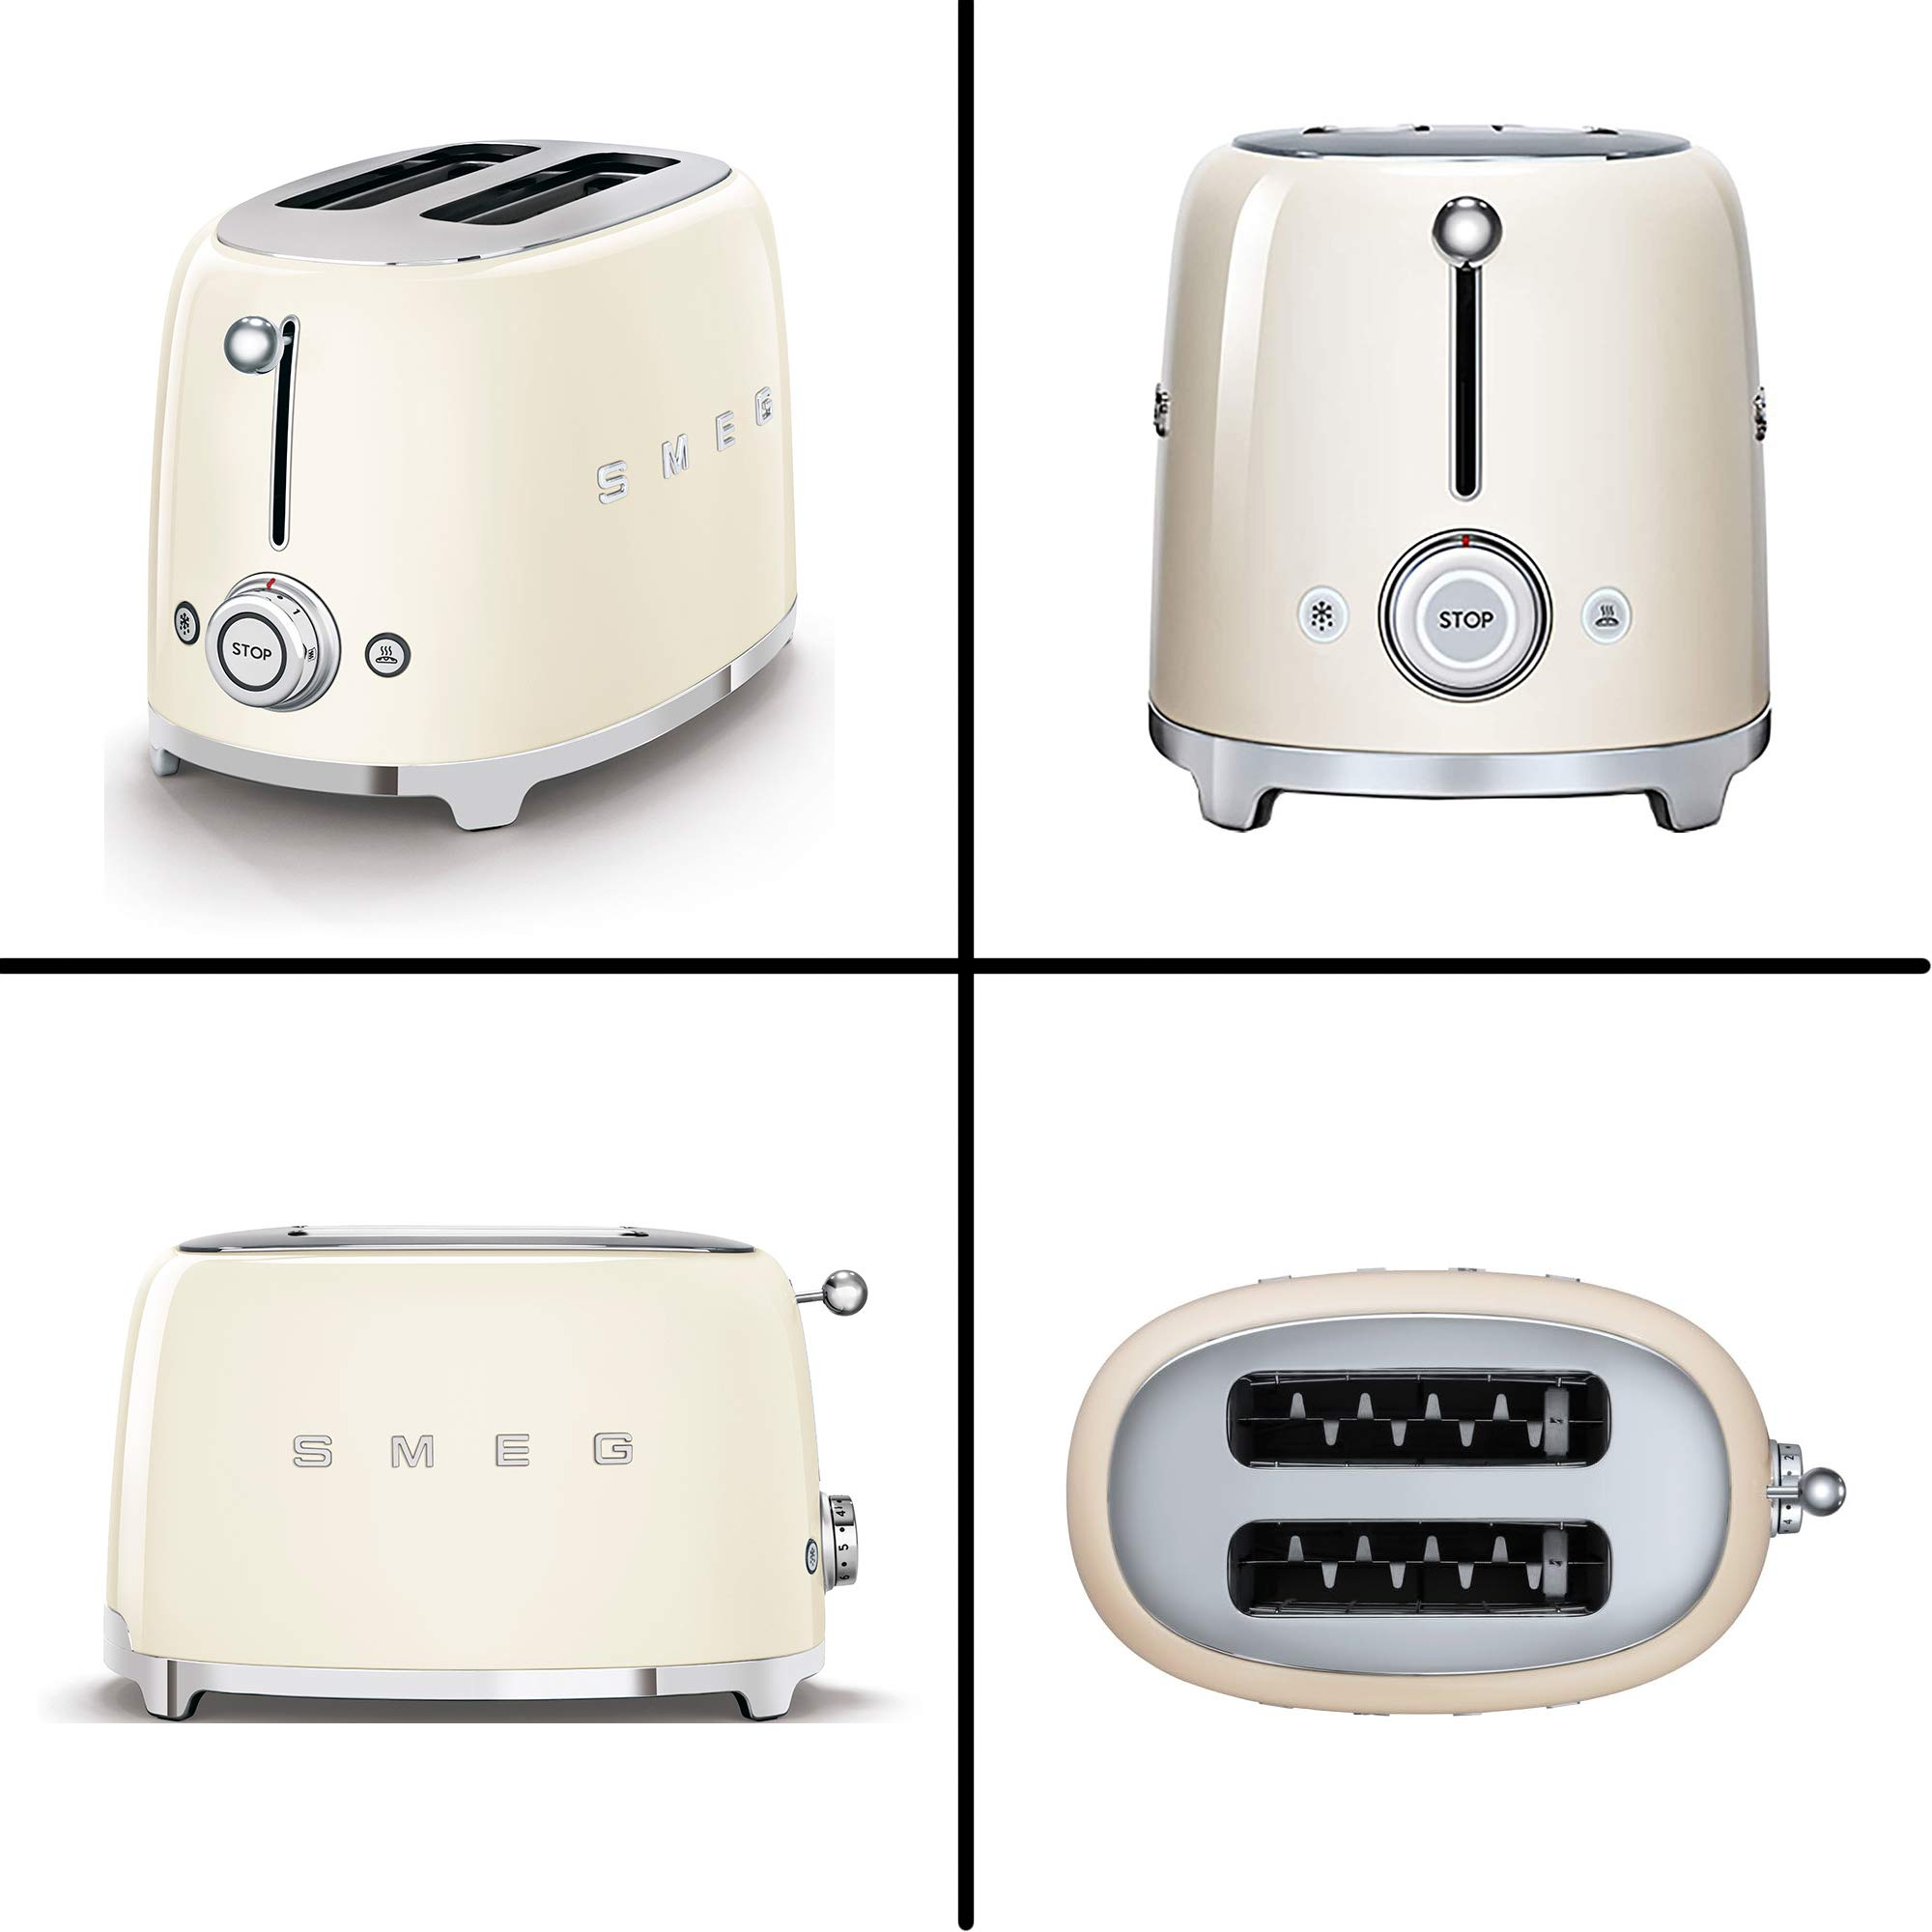 SMEG 2-Slice Toaster & 1.7-Liter Kettle in Cream by WhoIs Camera (Image #6)